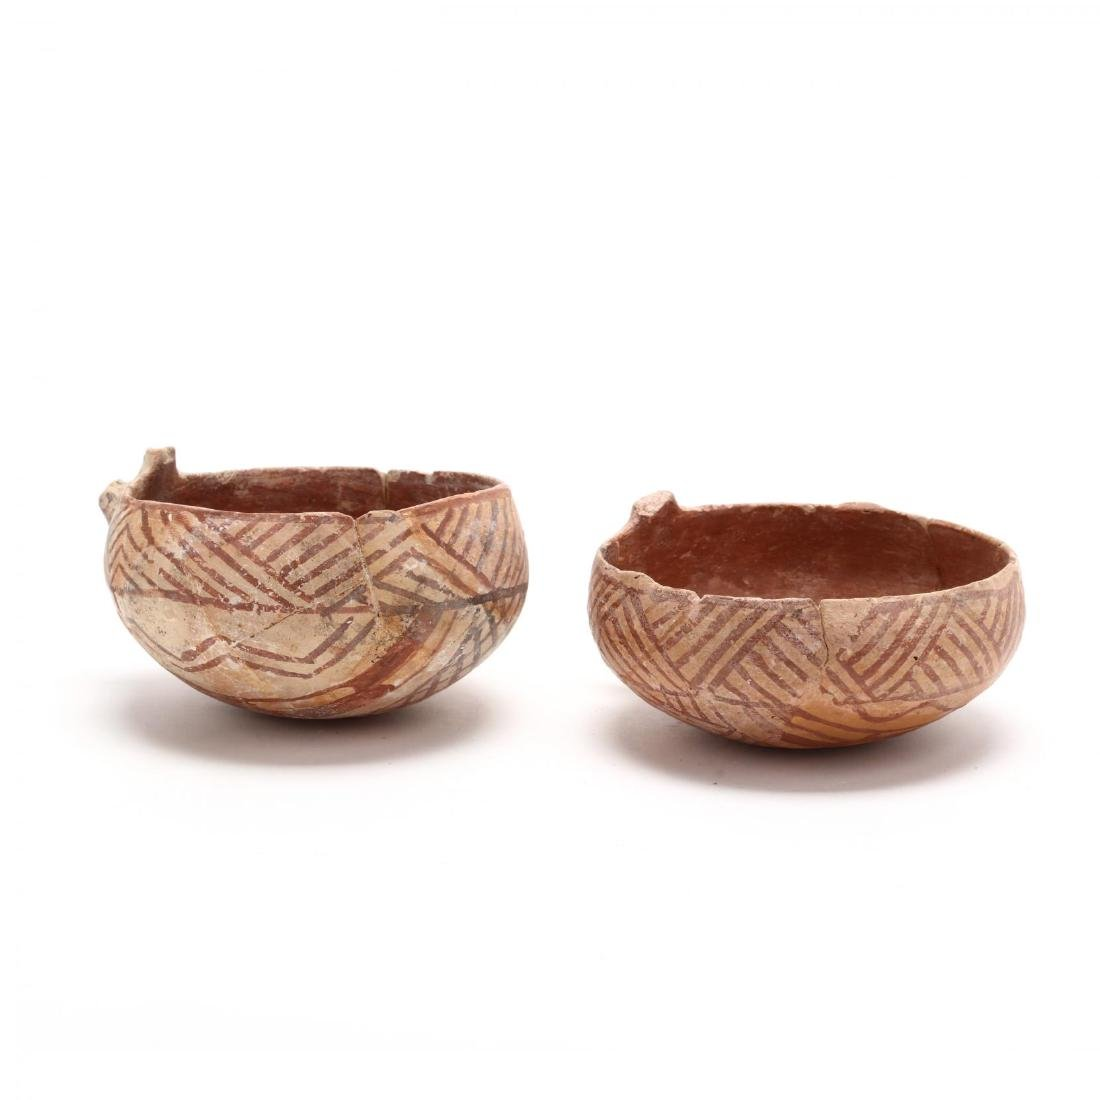 Pair of Mycenaean Bowls